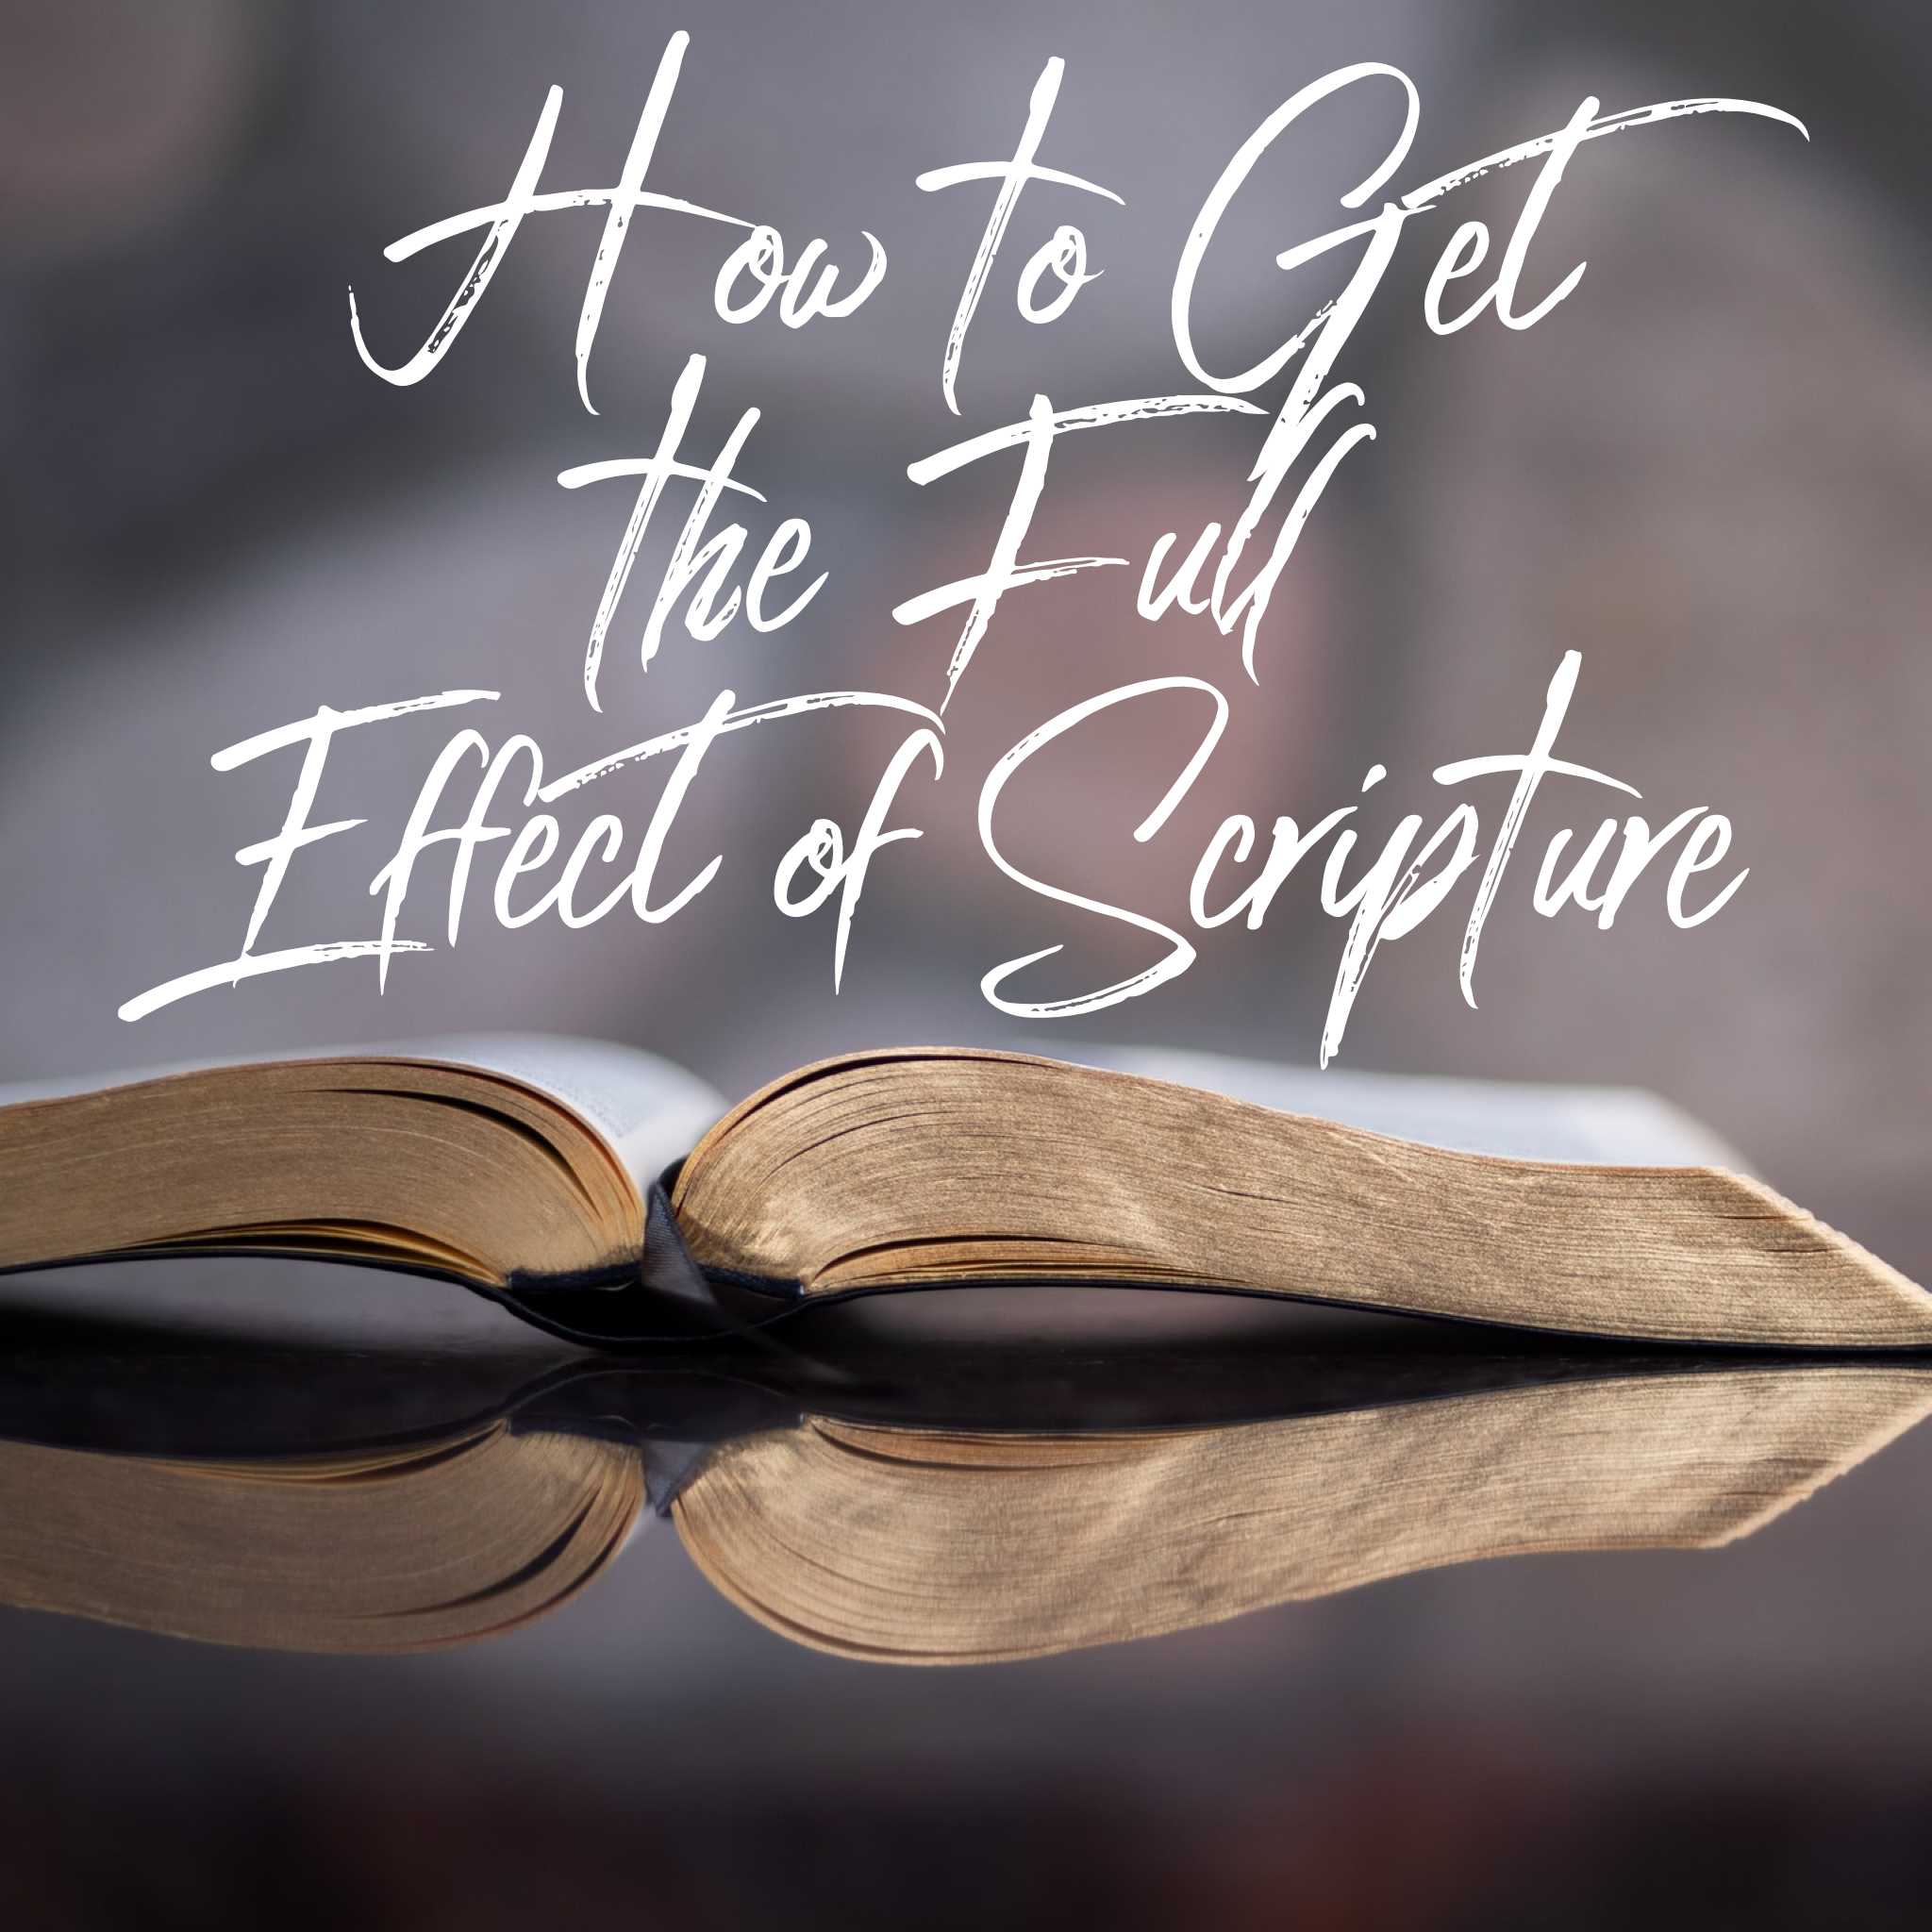 How to Get the Full Effect of Scripture - 9/6/19